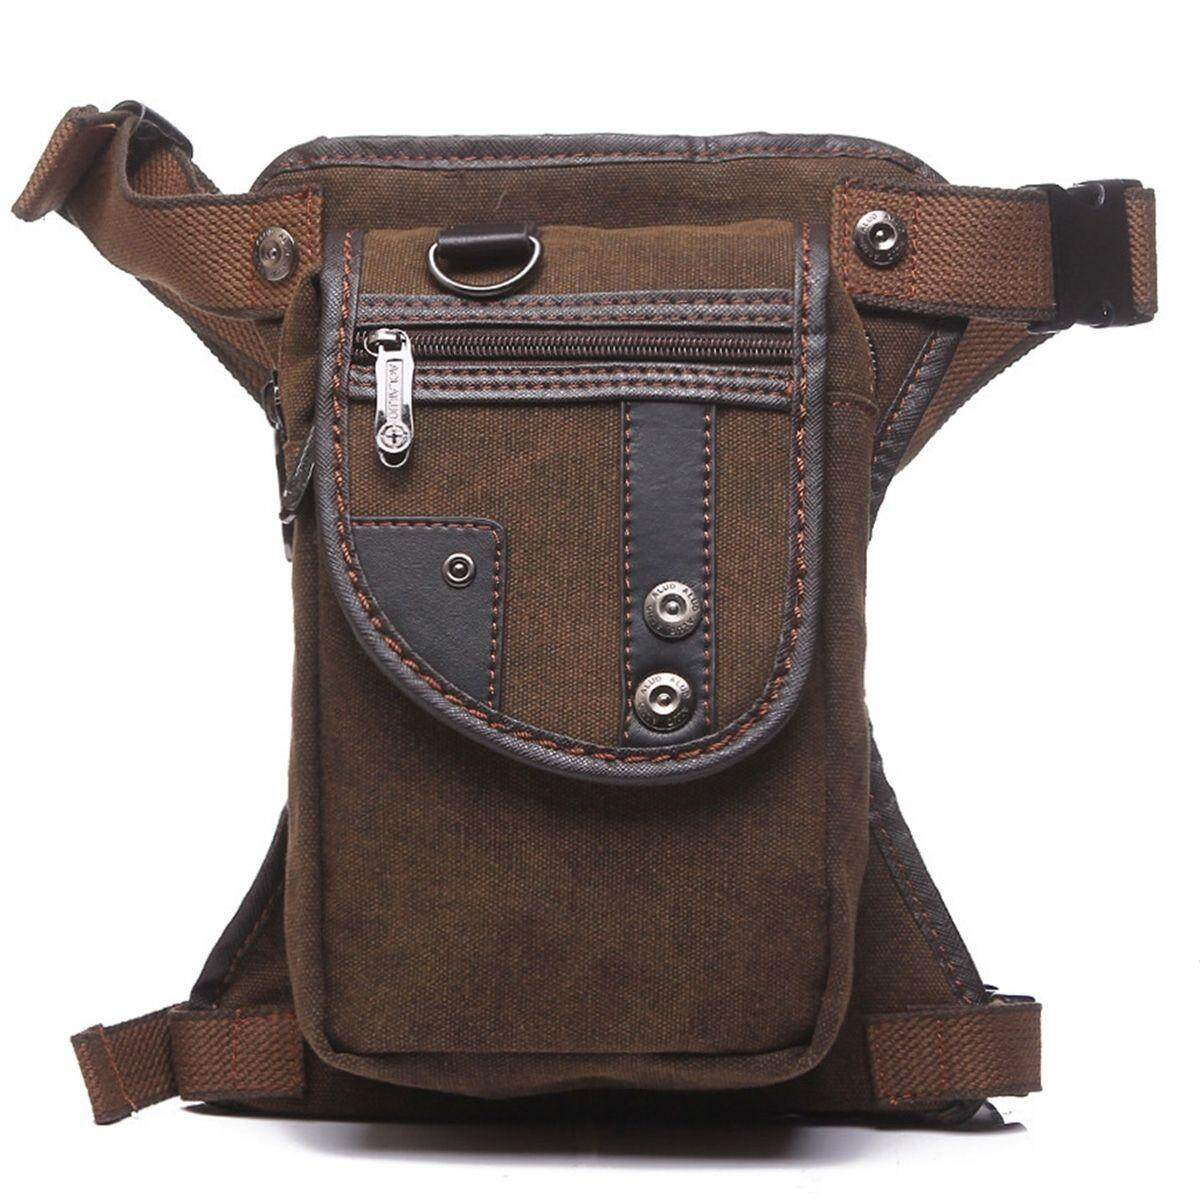 Men Nylon Canvas Multi Purpose Waist Bag Leg Drop Bag Hip F*nny Motorcycle Pack Brown Intl Not Specified Cheap On China